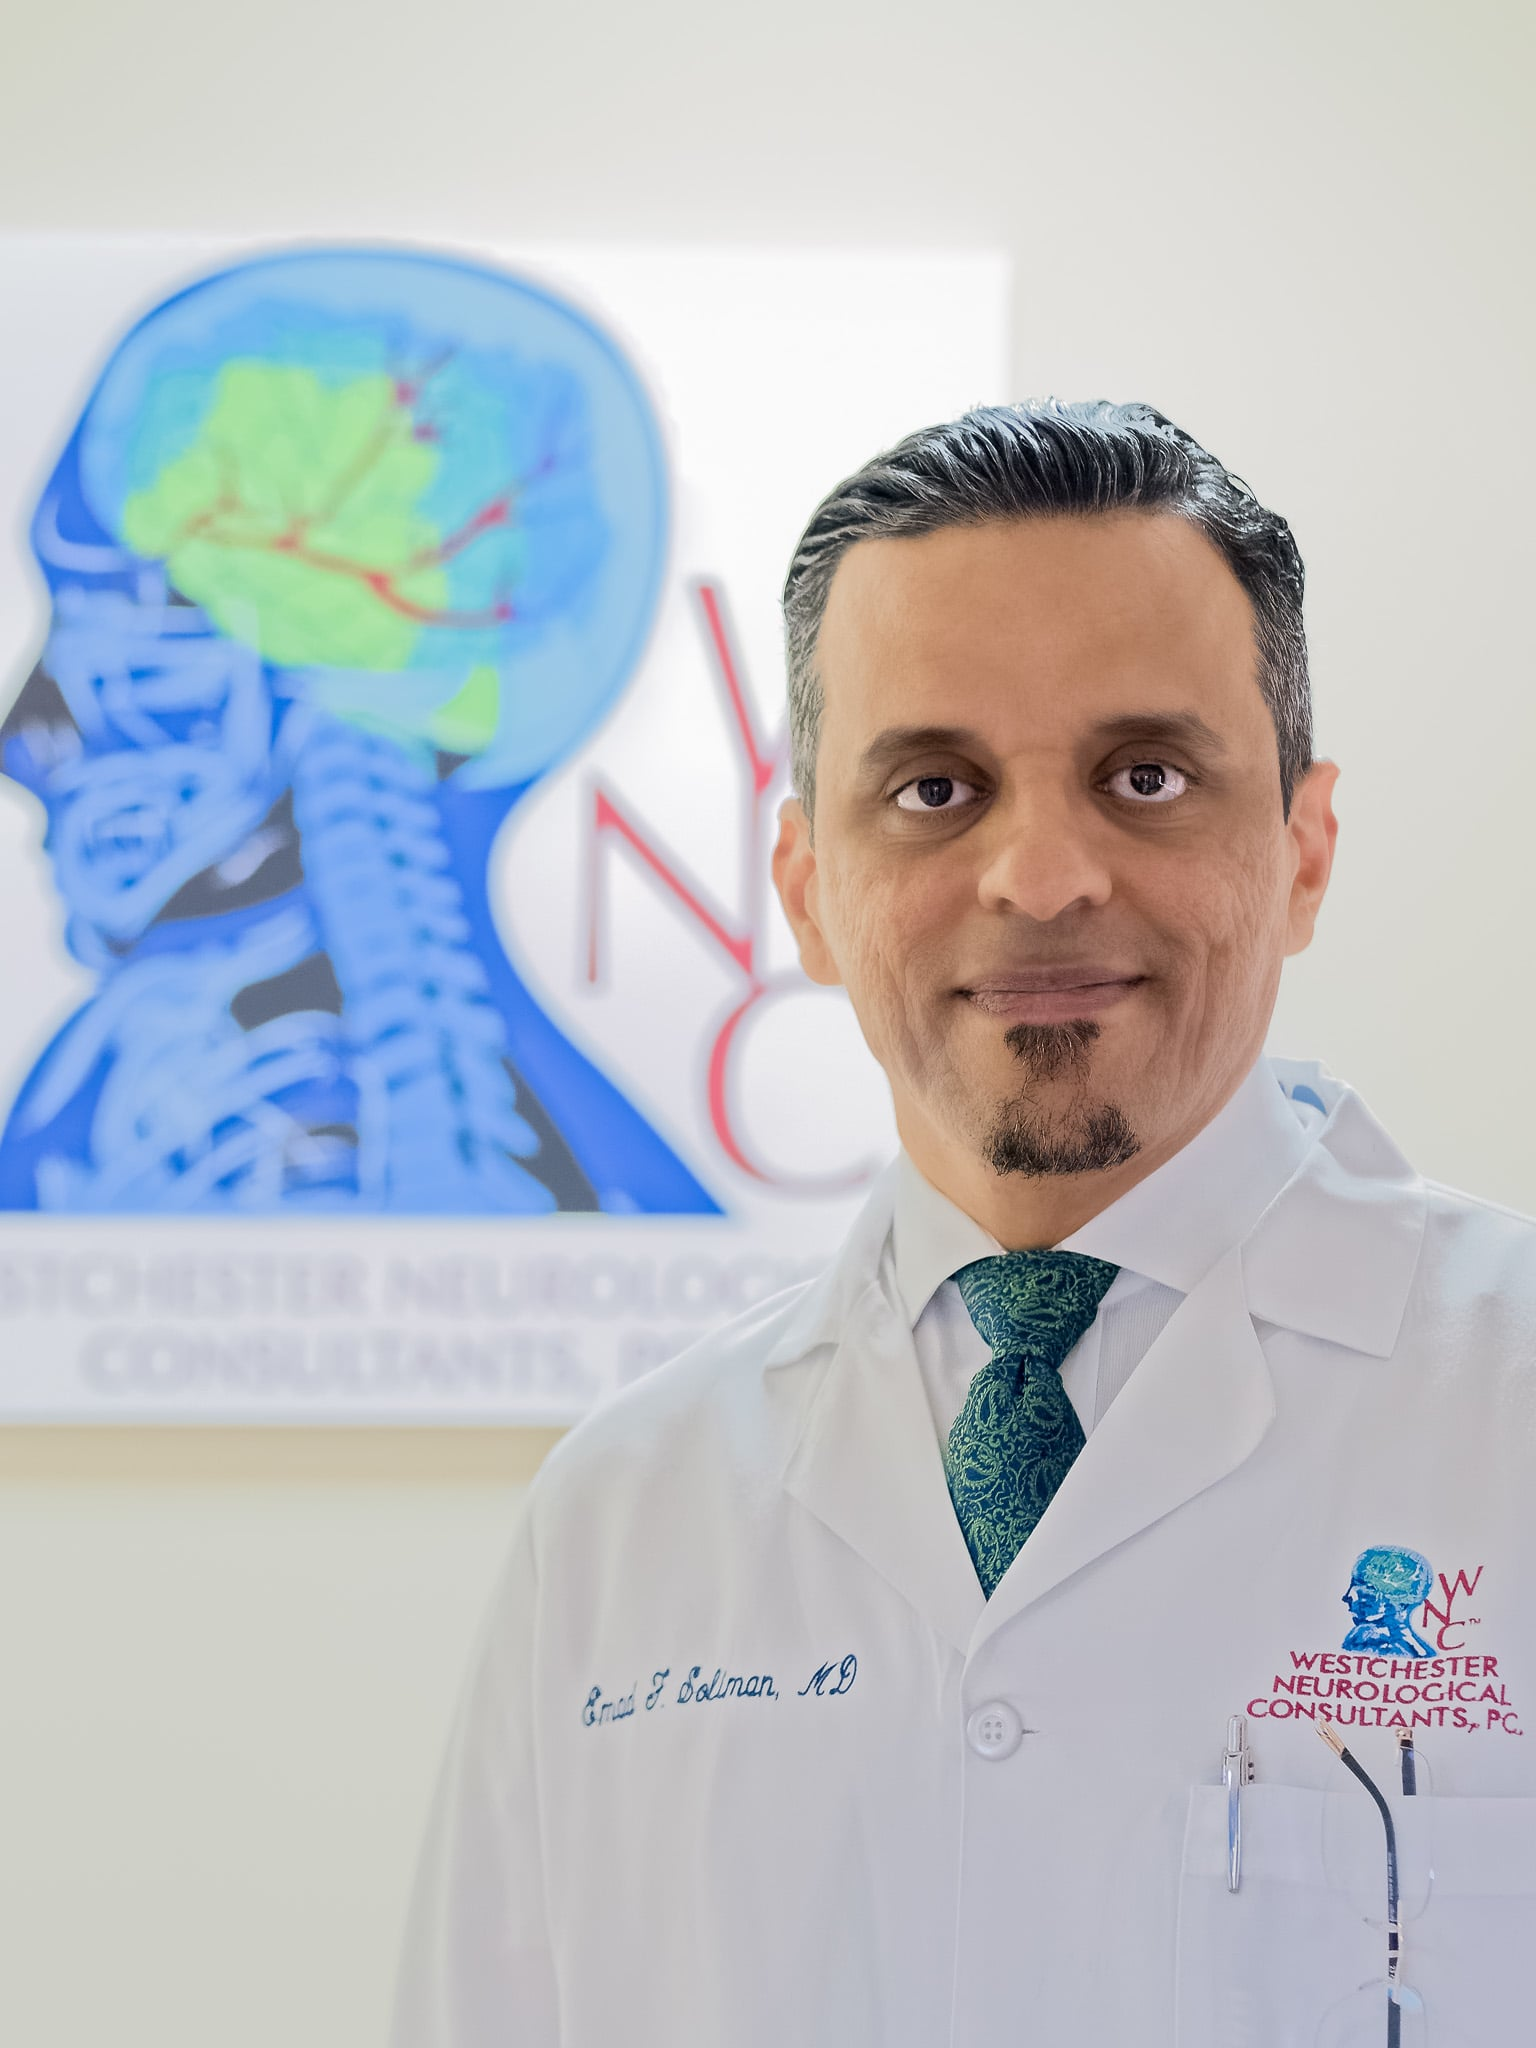 Dr. Emad F Soliman MD